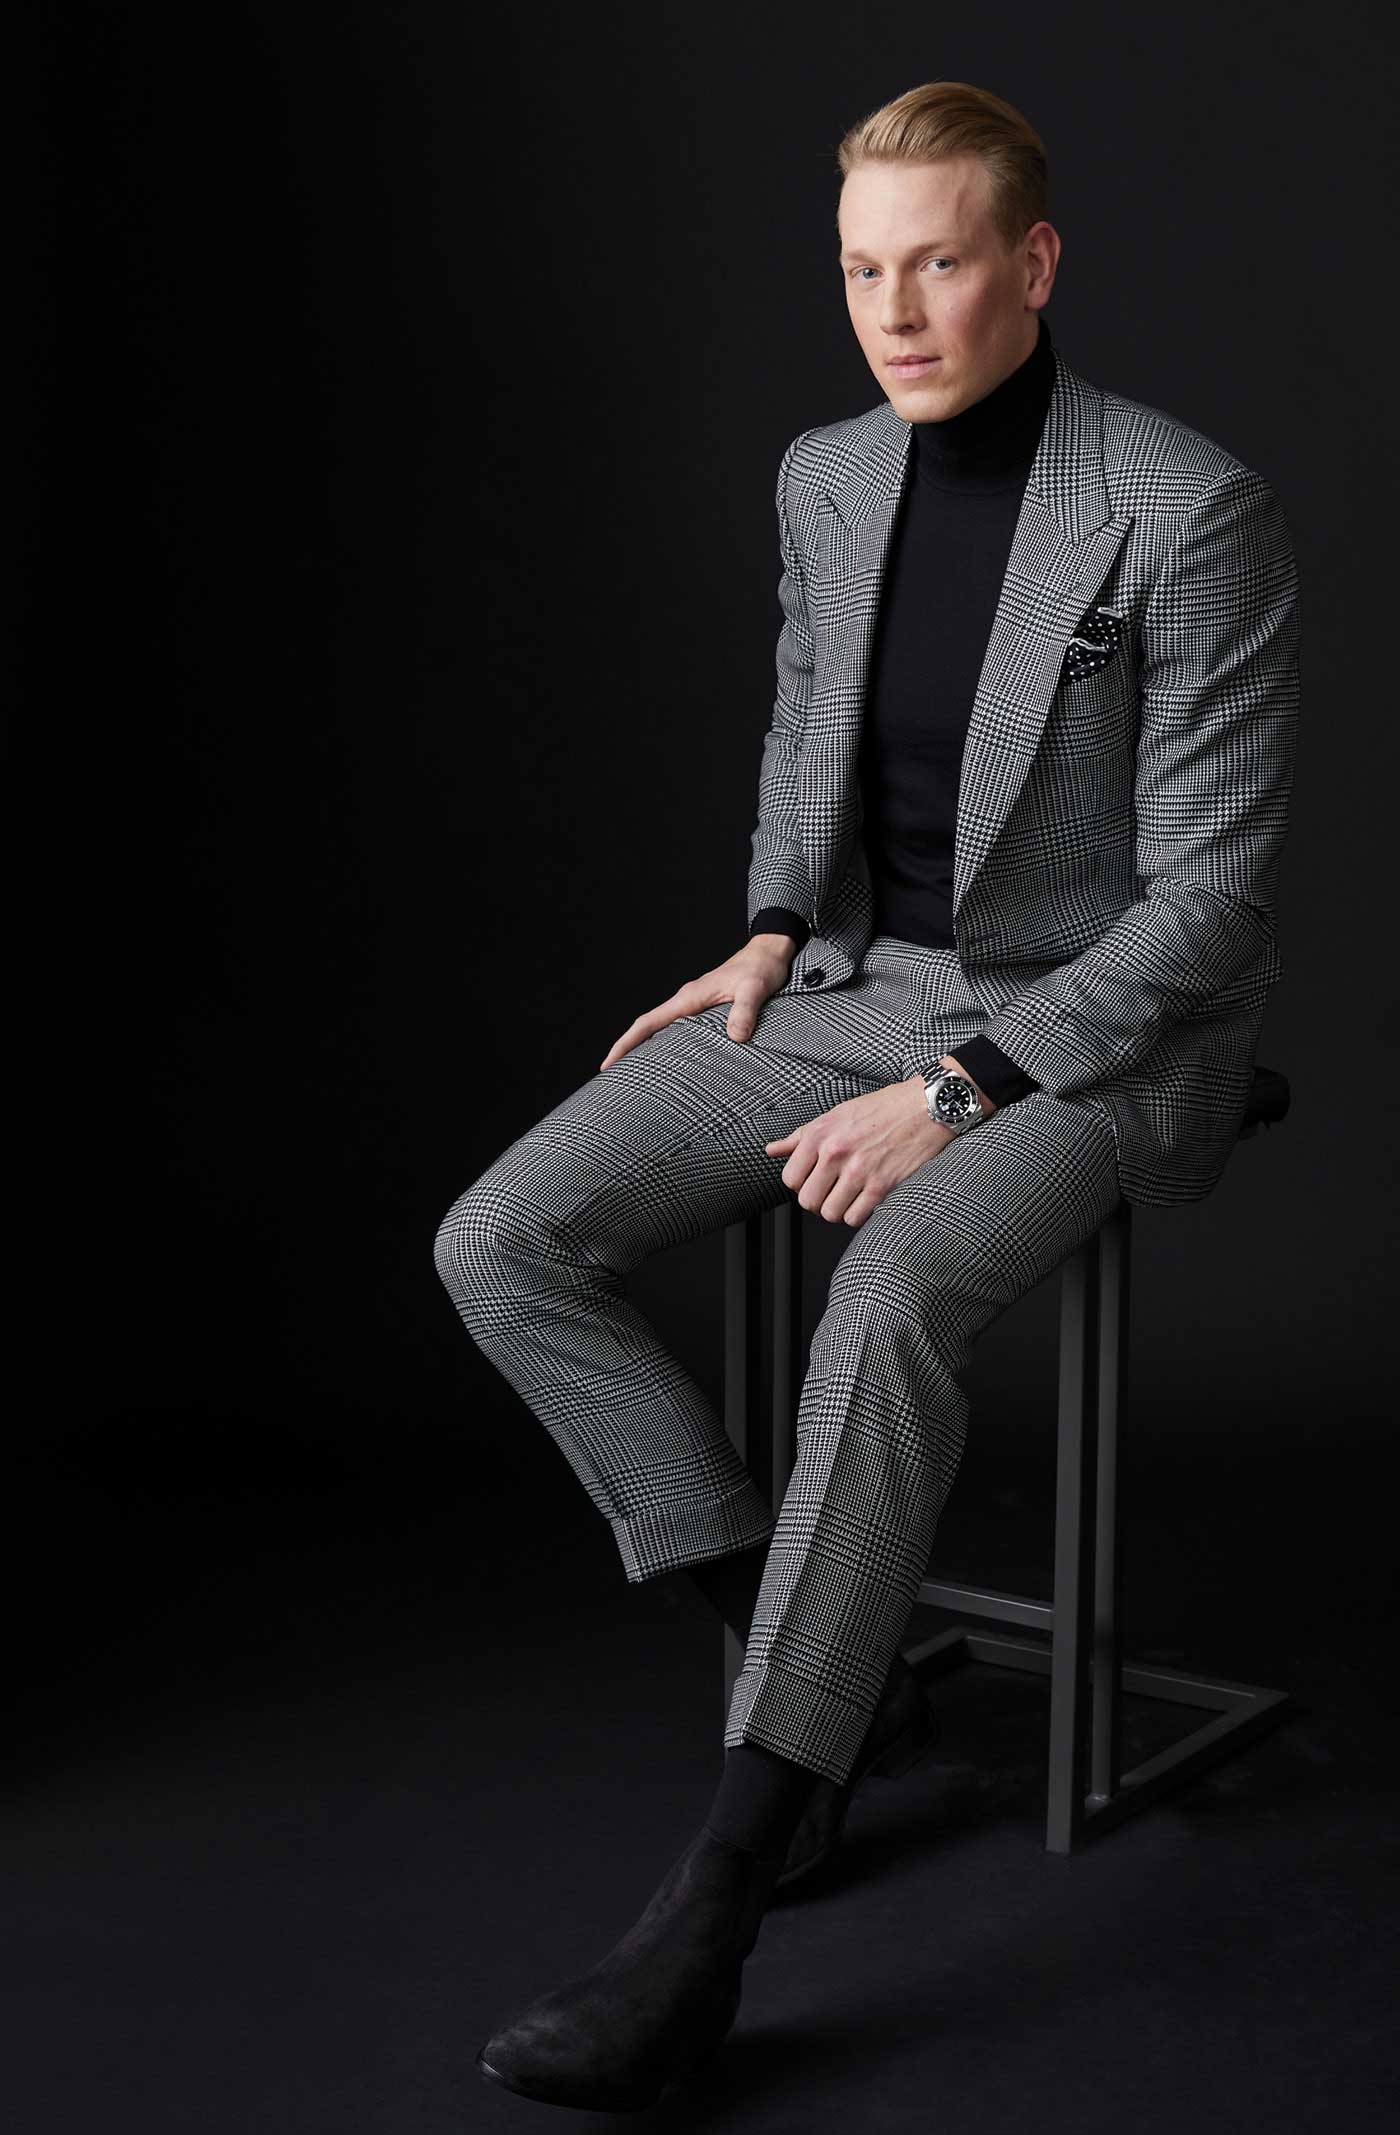 Sean Clancy Is A Fashion Industry Insider Who Has Developed His Own Understated Look Avenue Calgary